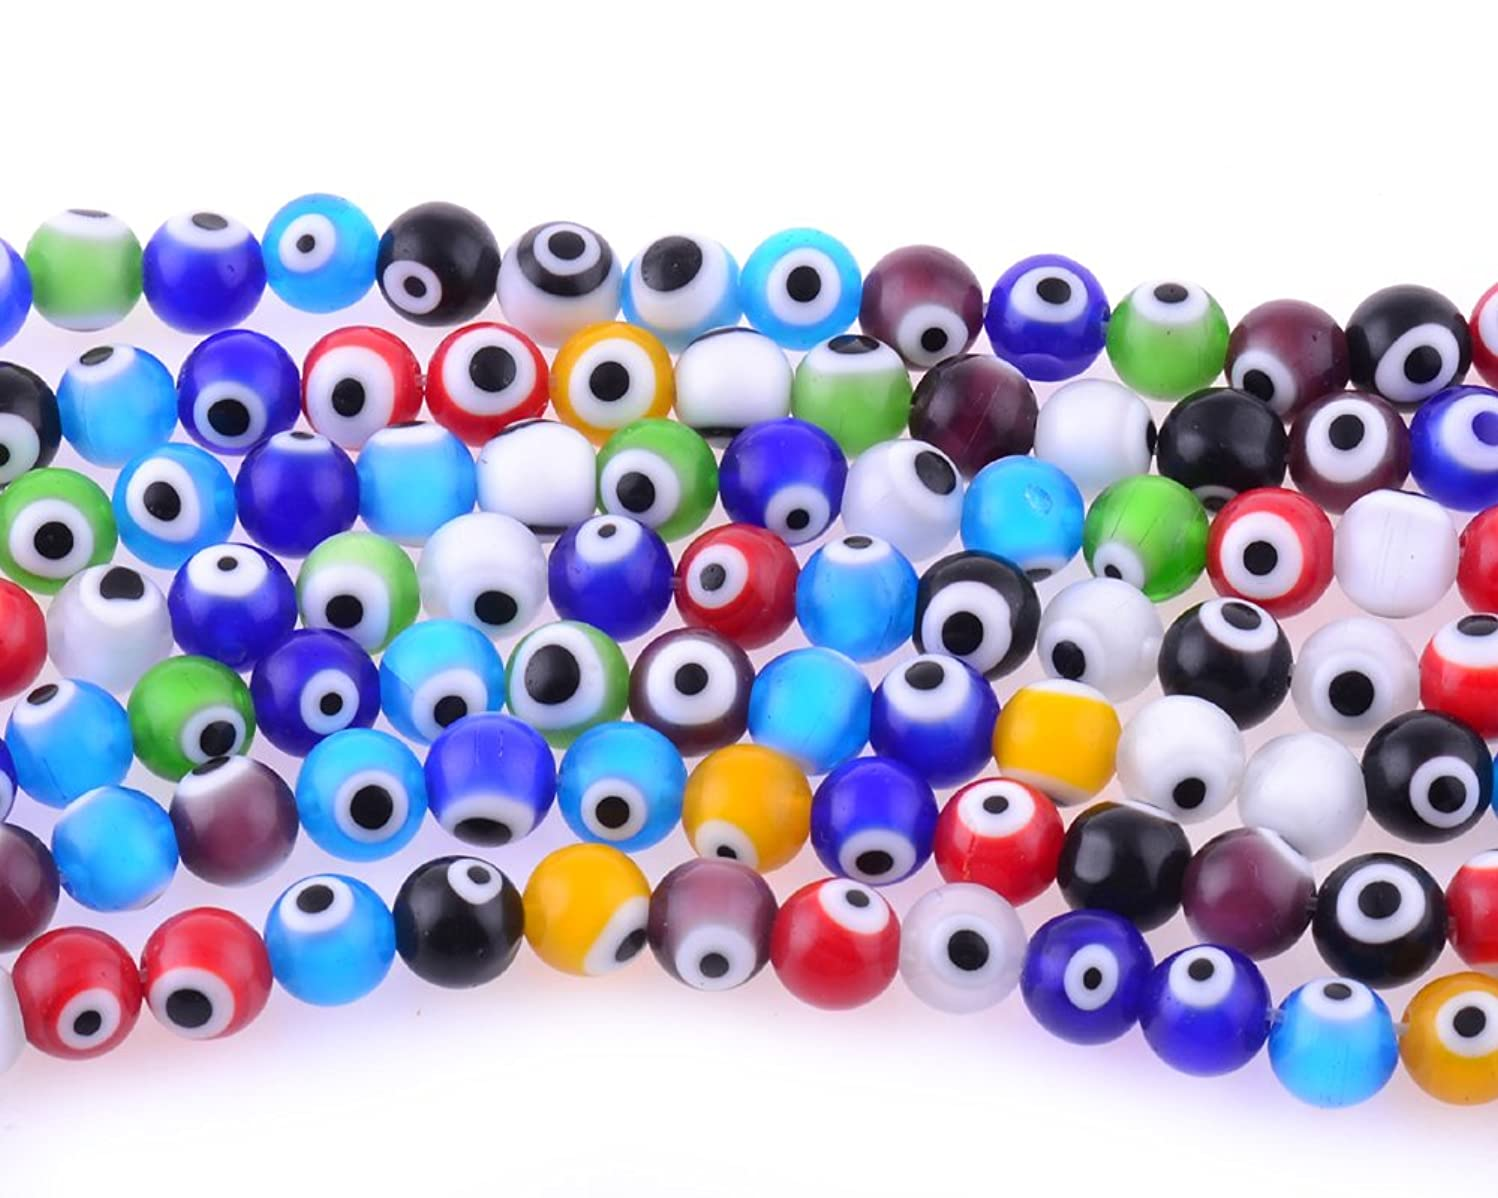 10mm 200 Pcs Evil Eye Glass Beads Assorted Colors of Jewelry Findings for Bracelet ,Necklace or Others